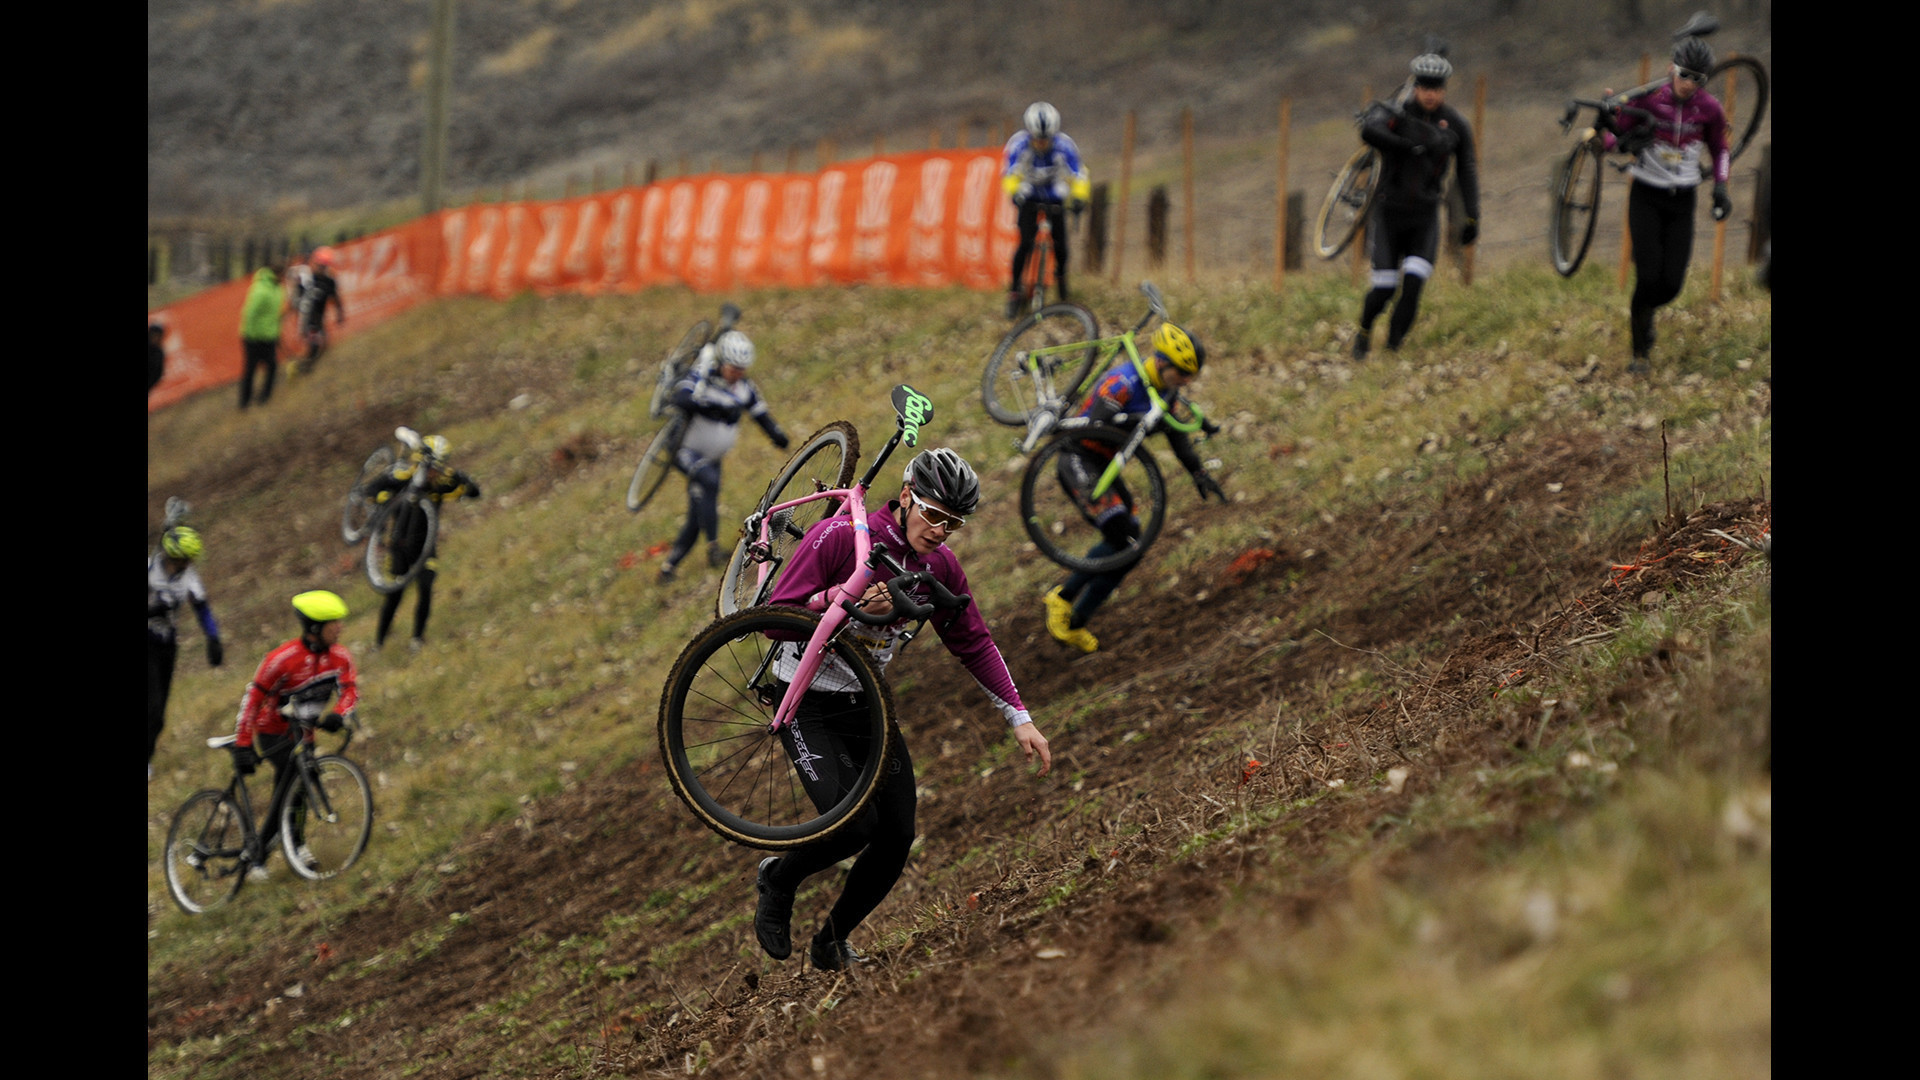 cyclocross riders ready to get down and dirty in hartford races